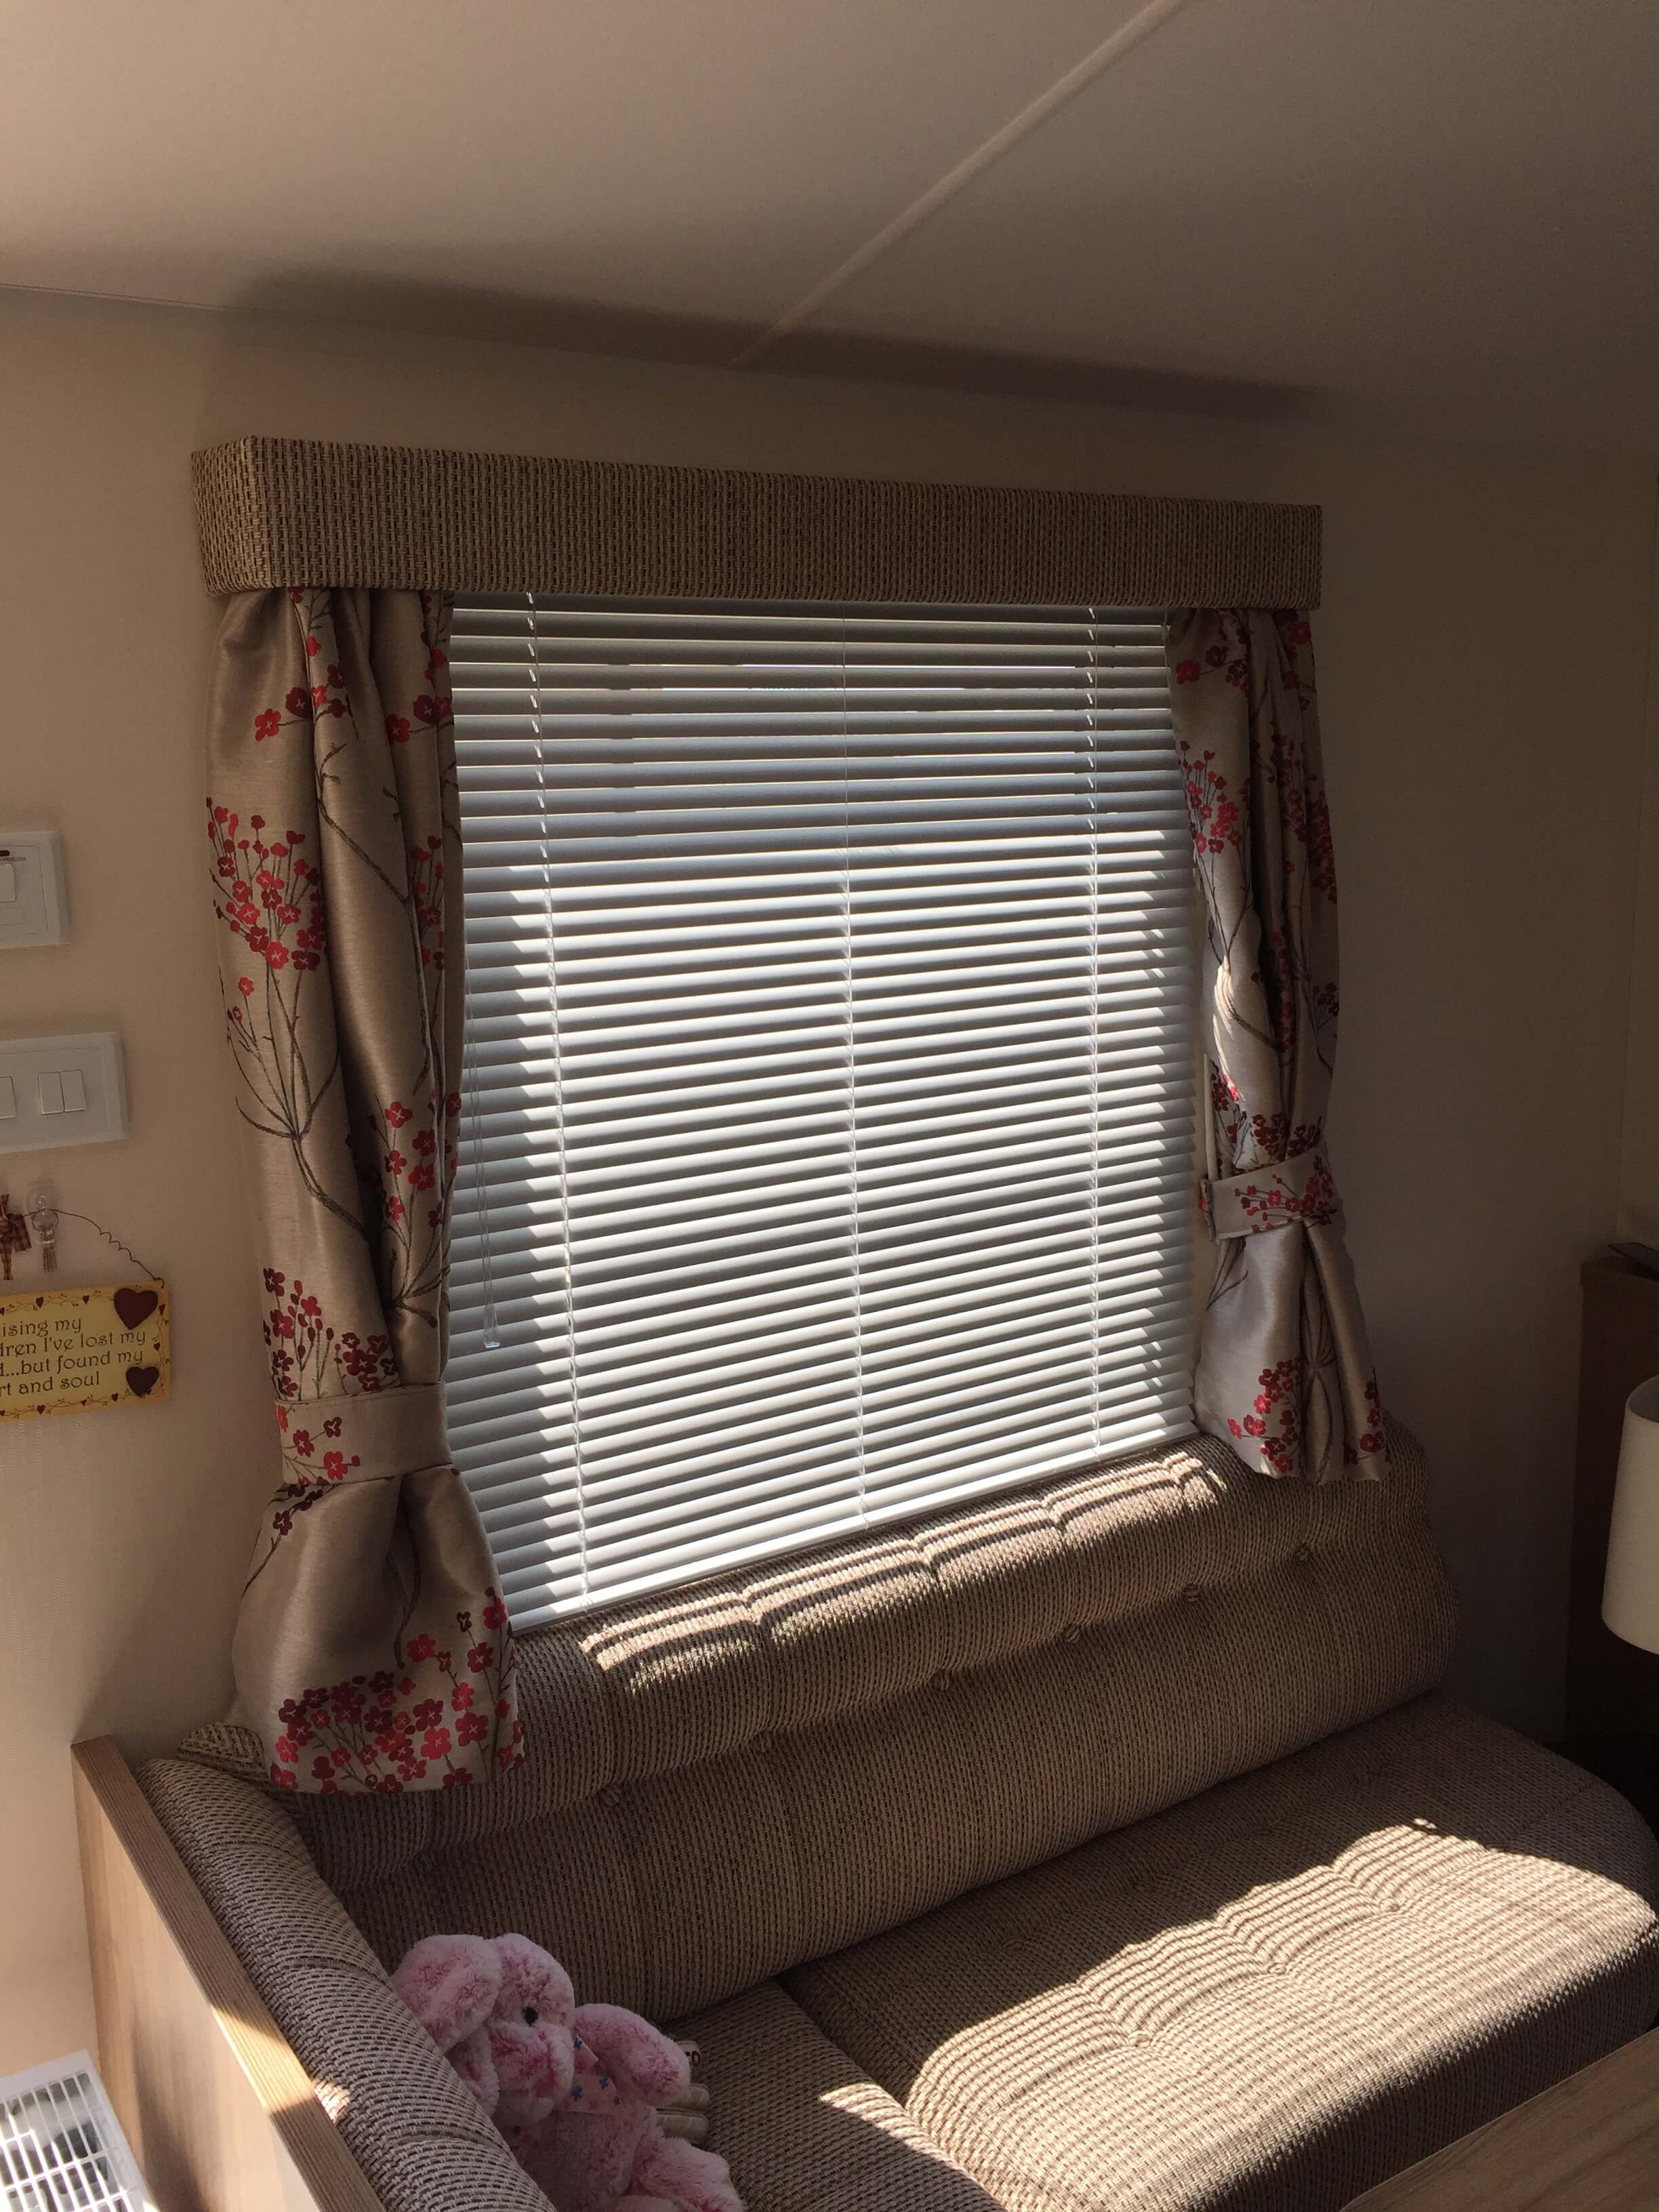 to com help just learn want how this pin can homemade blinds roman like make we